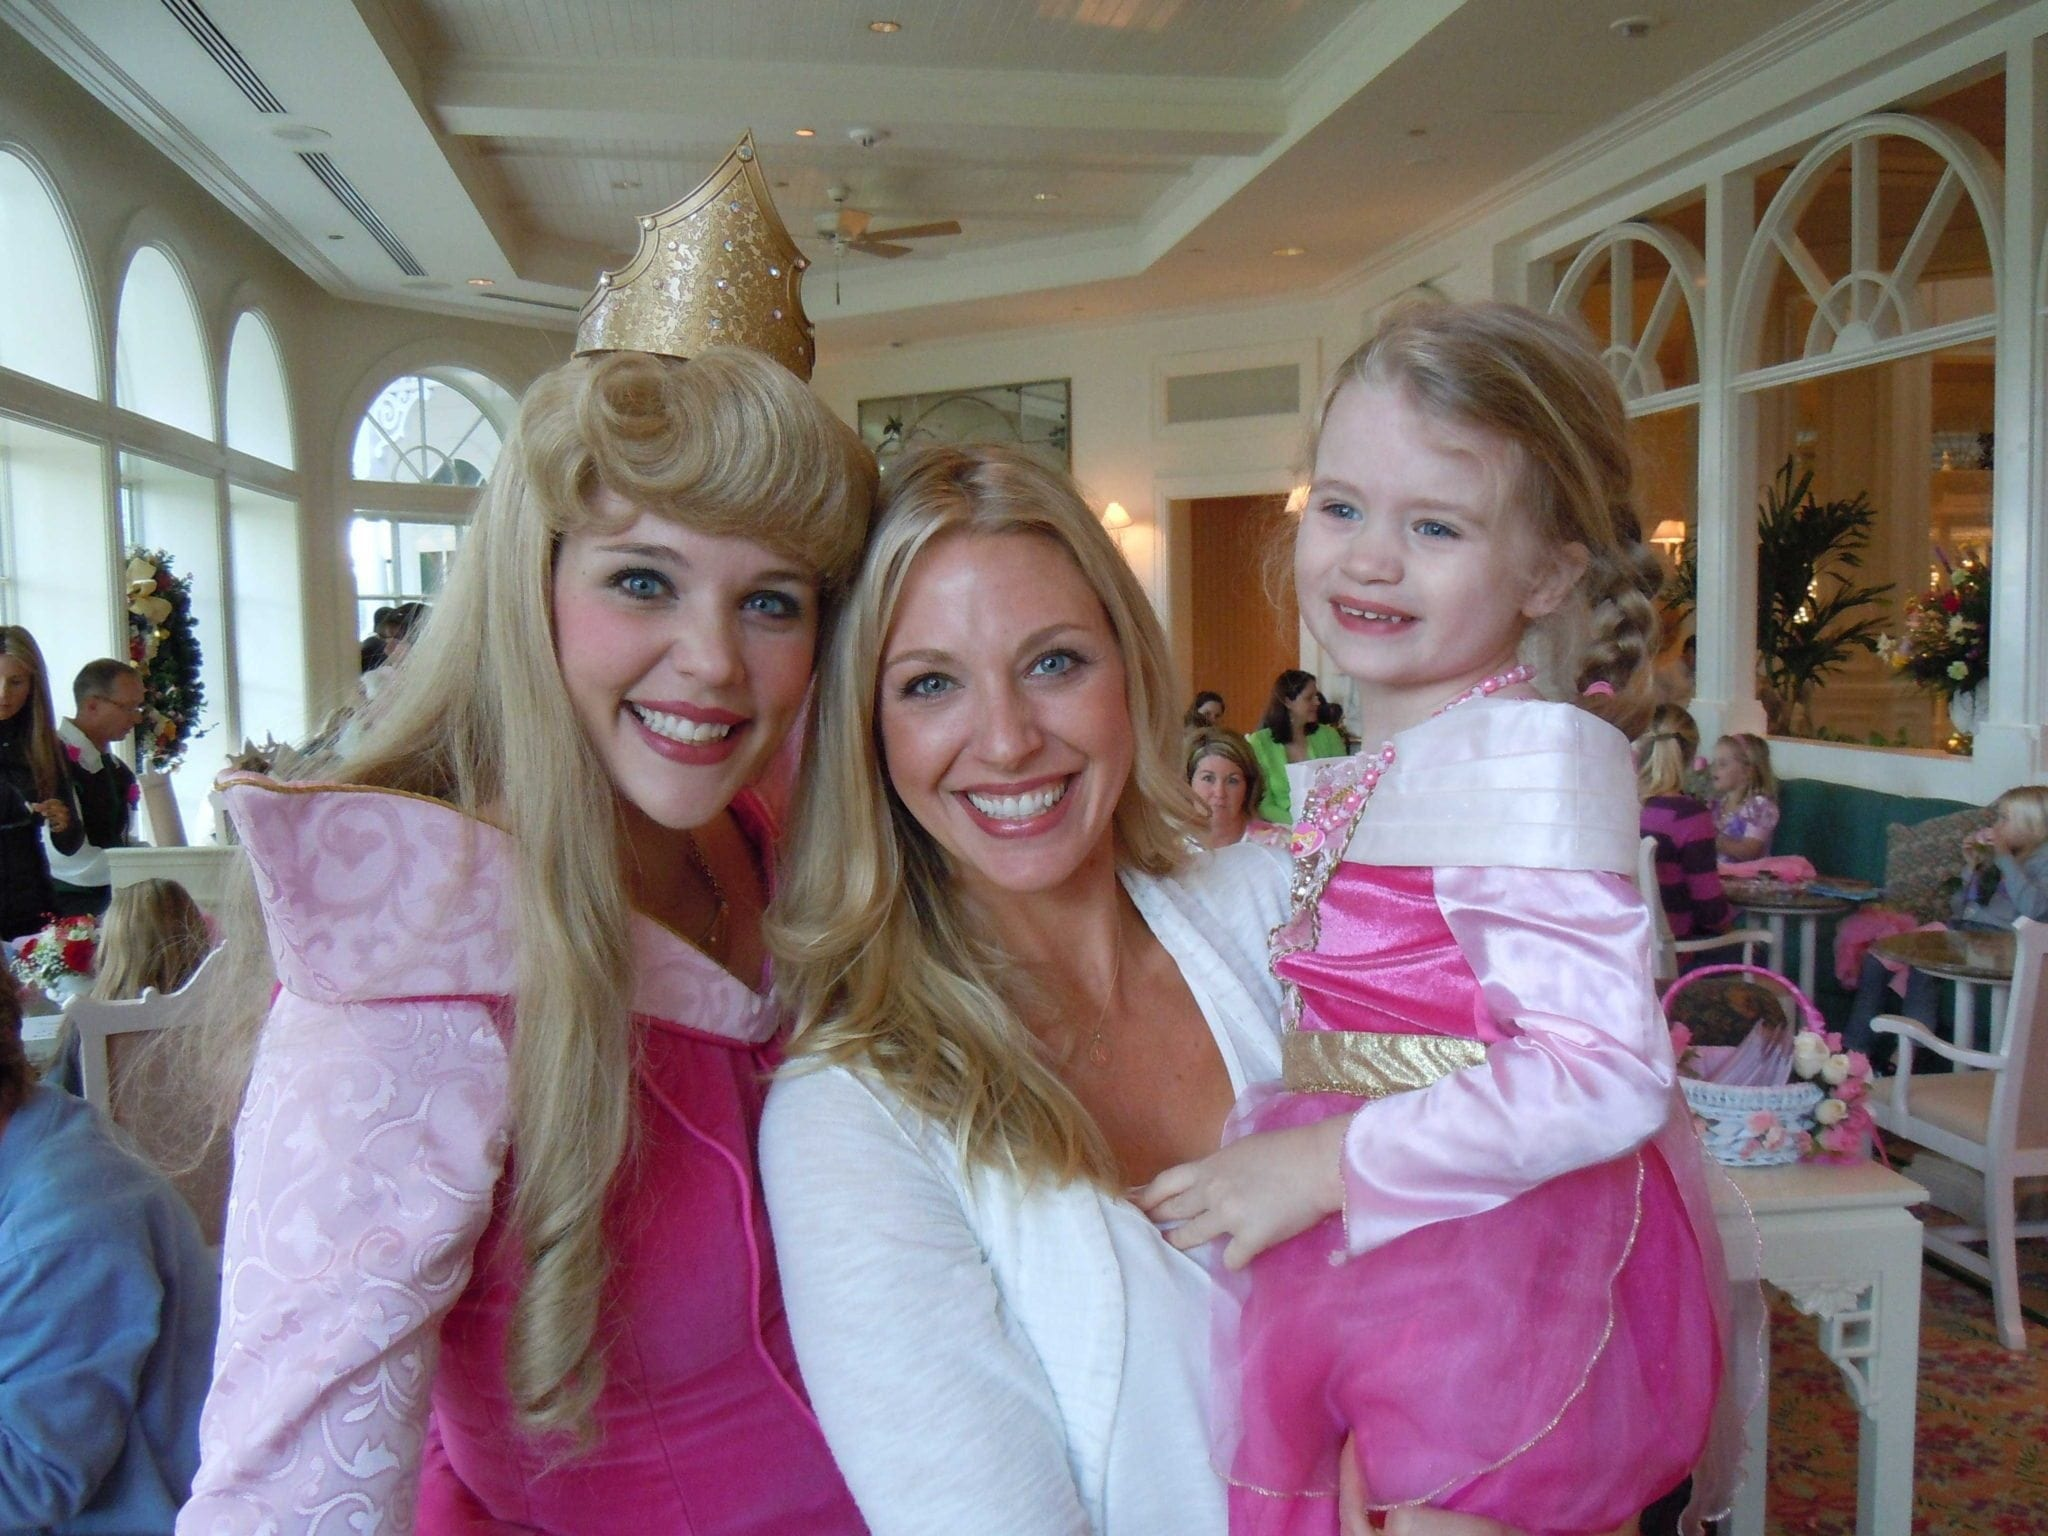 A Disney World mom blog with ways to stay sane at the Magic Kingdom with kids. Sleeping Beauty breakfast with my daughter.